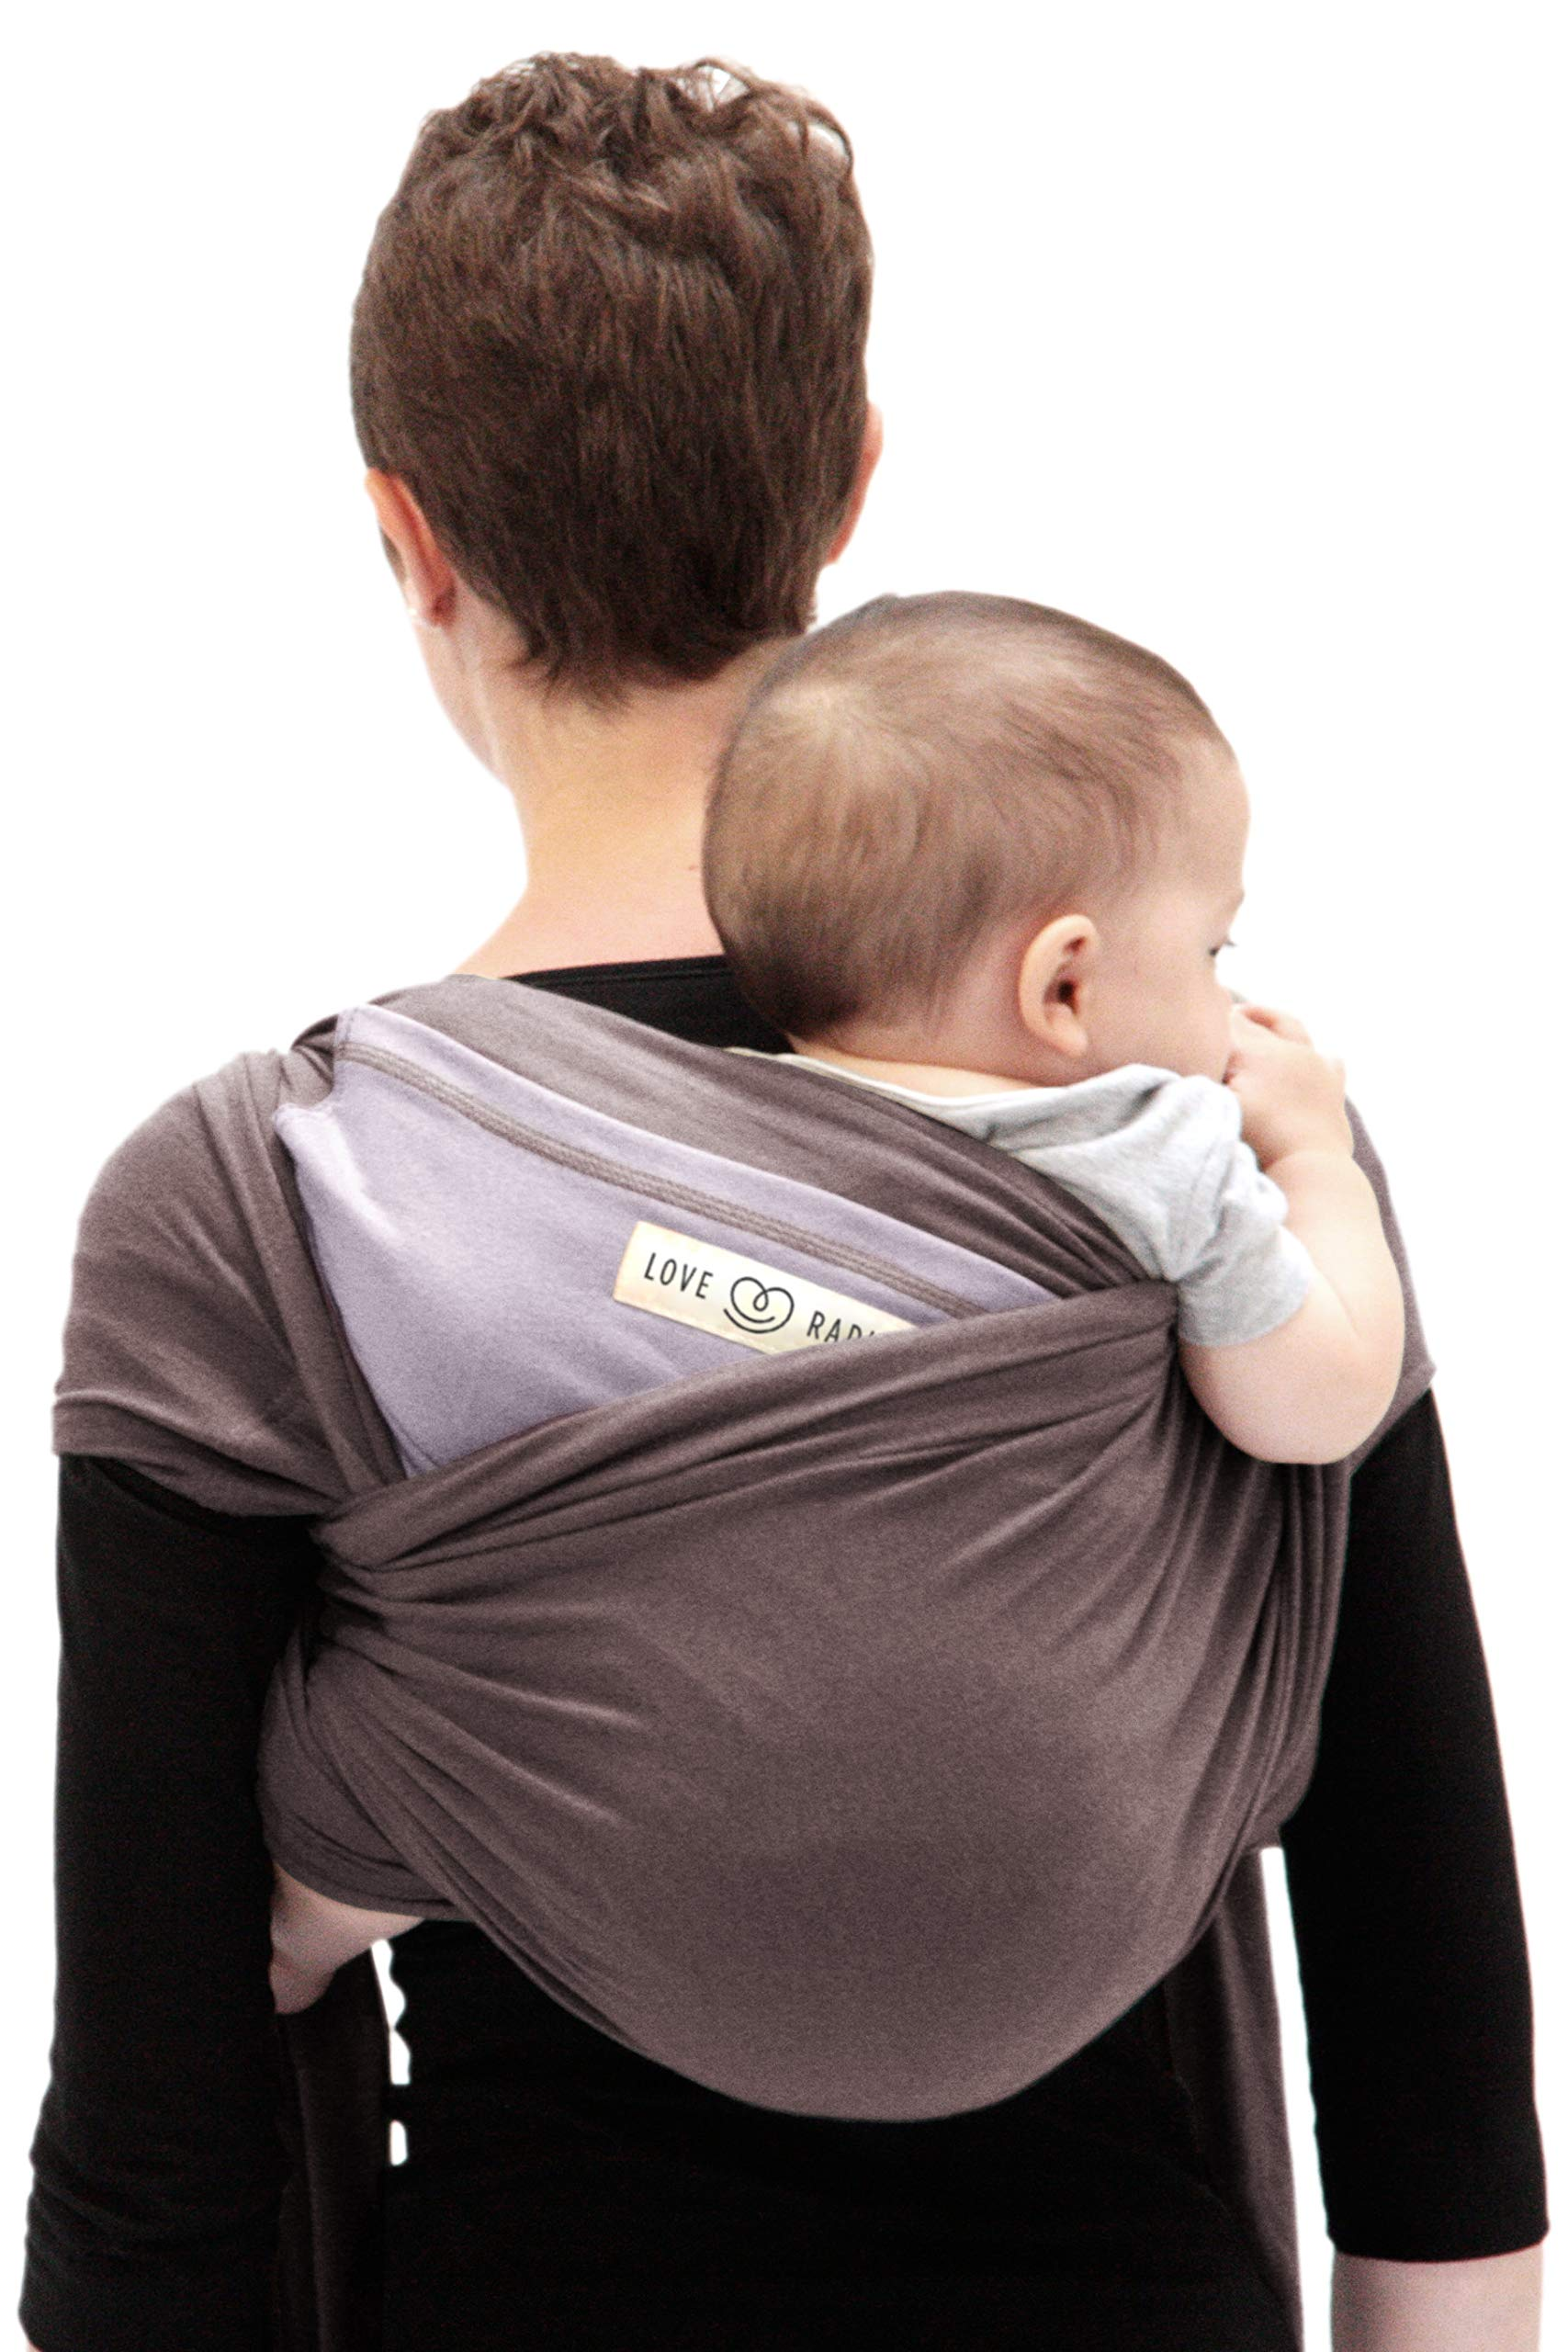 Je Porte Mon Bébé L'Originale Baby Sling Je Porte Mon Bébé High Quality Elastic Baby Carrier Dense, elastic and breathable material Great support, fits your baby's body like a second skin. 14